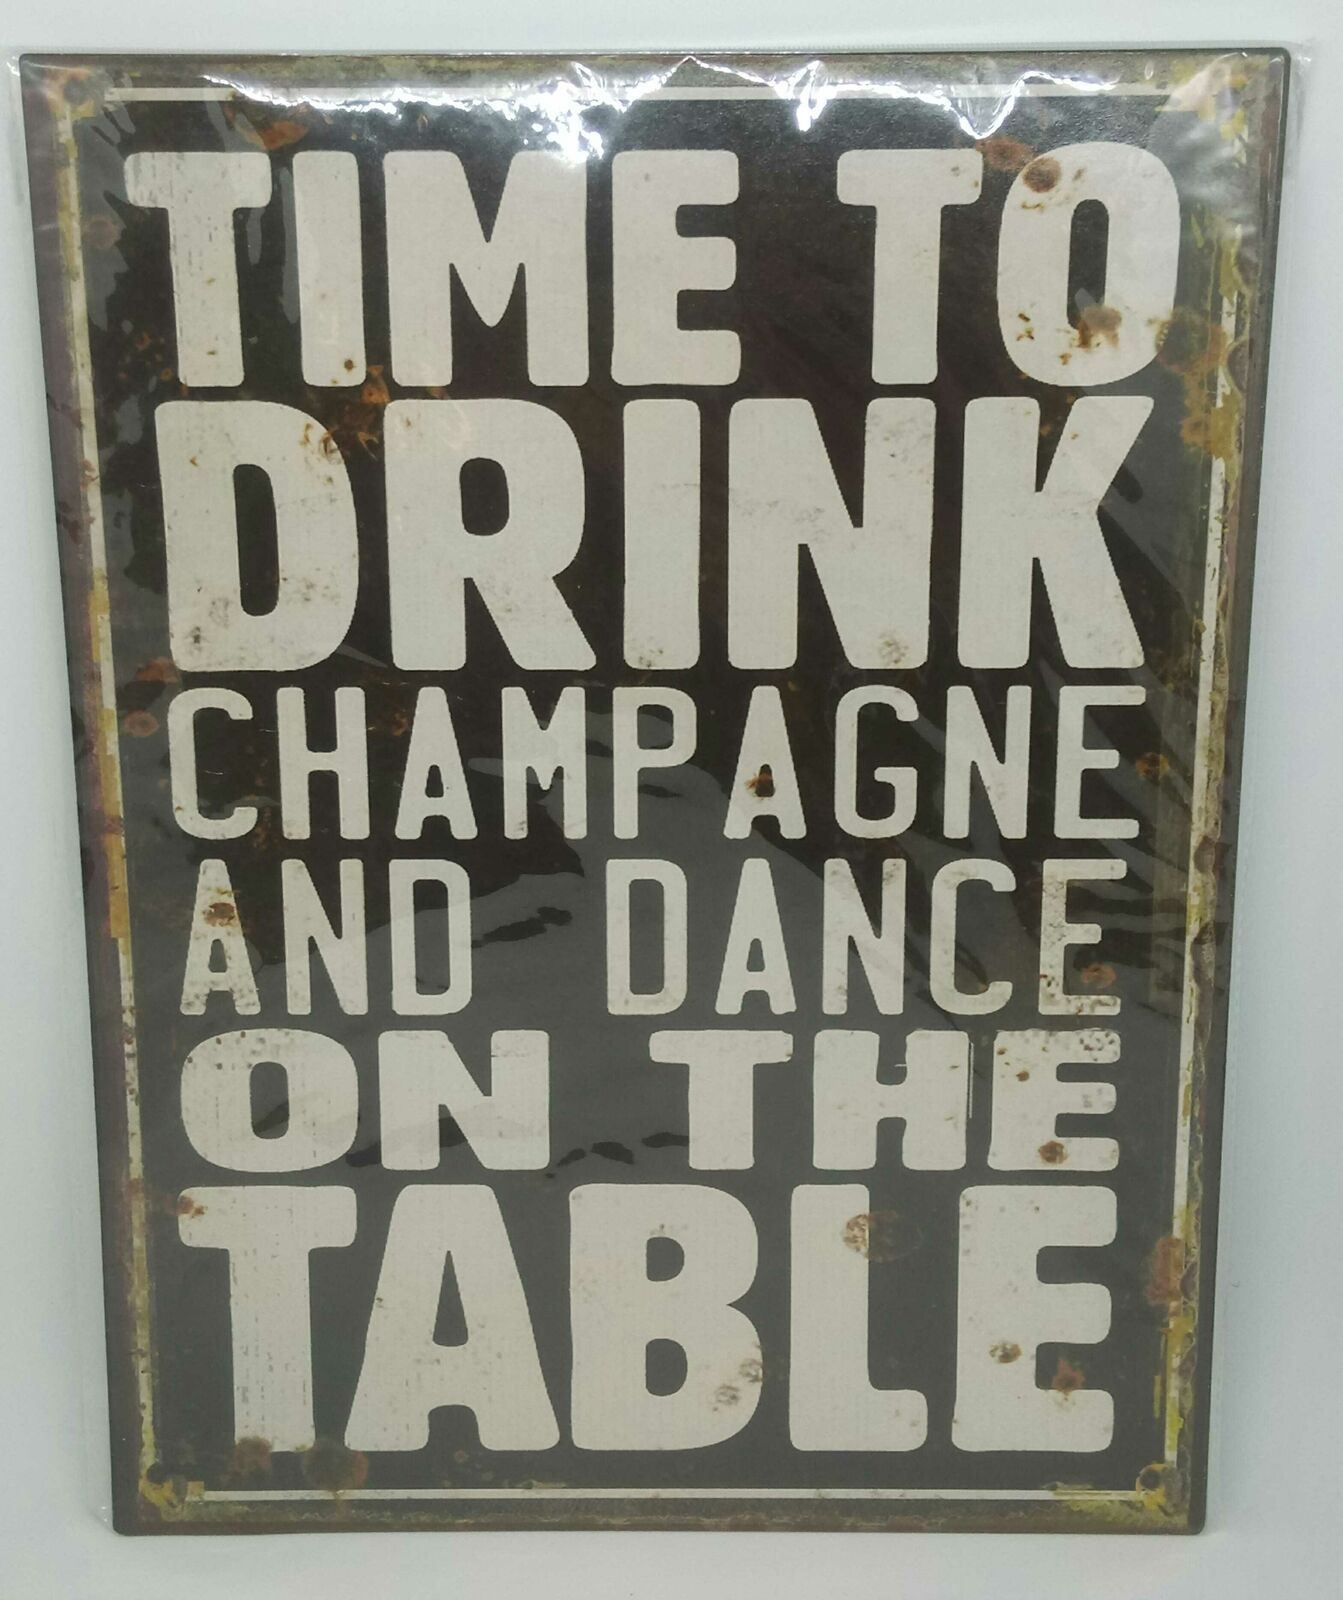 Nostalgie Blechschild Time To Drink Champagne And Dance On The Table 35x26 50241 In 2020 Nostalgie Mach Es Moglich Taten